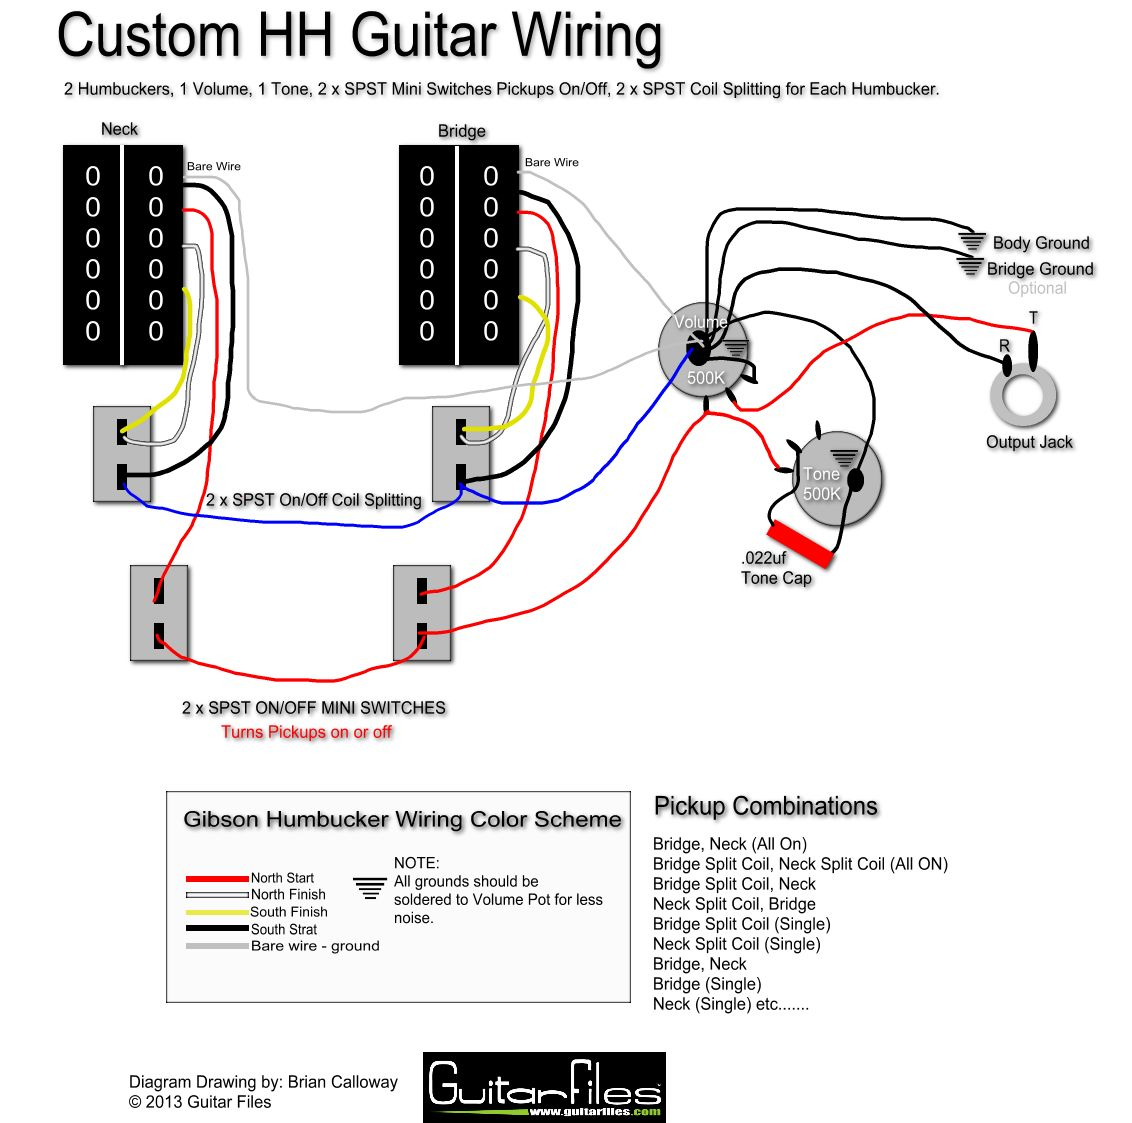 custom hh wiring diagram with spst coil splitting and spst switching rh pinterest com Push Pull Split Coil Installation Push Pull Coil Tap